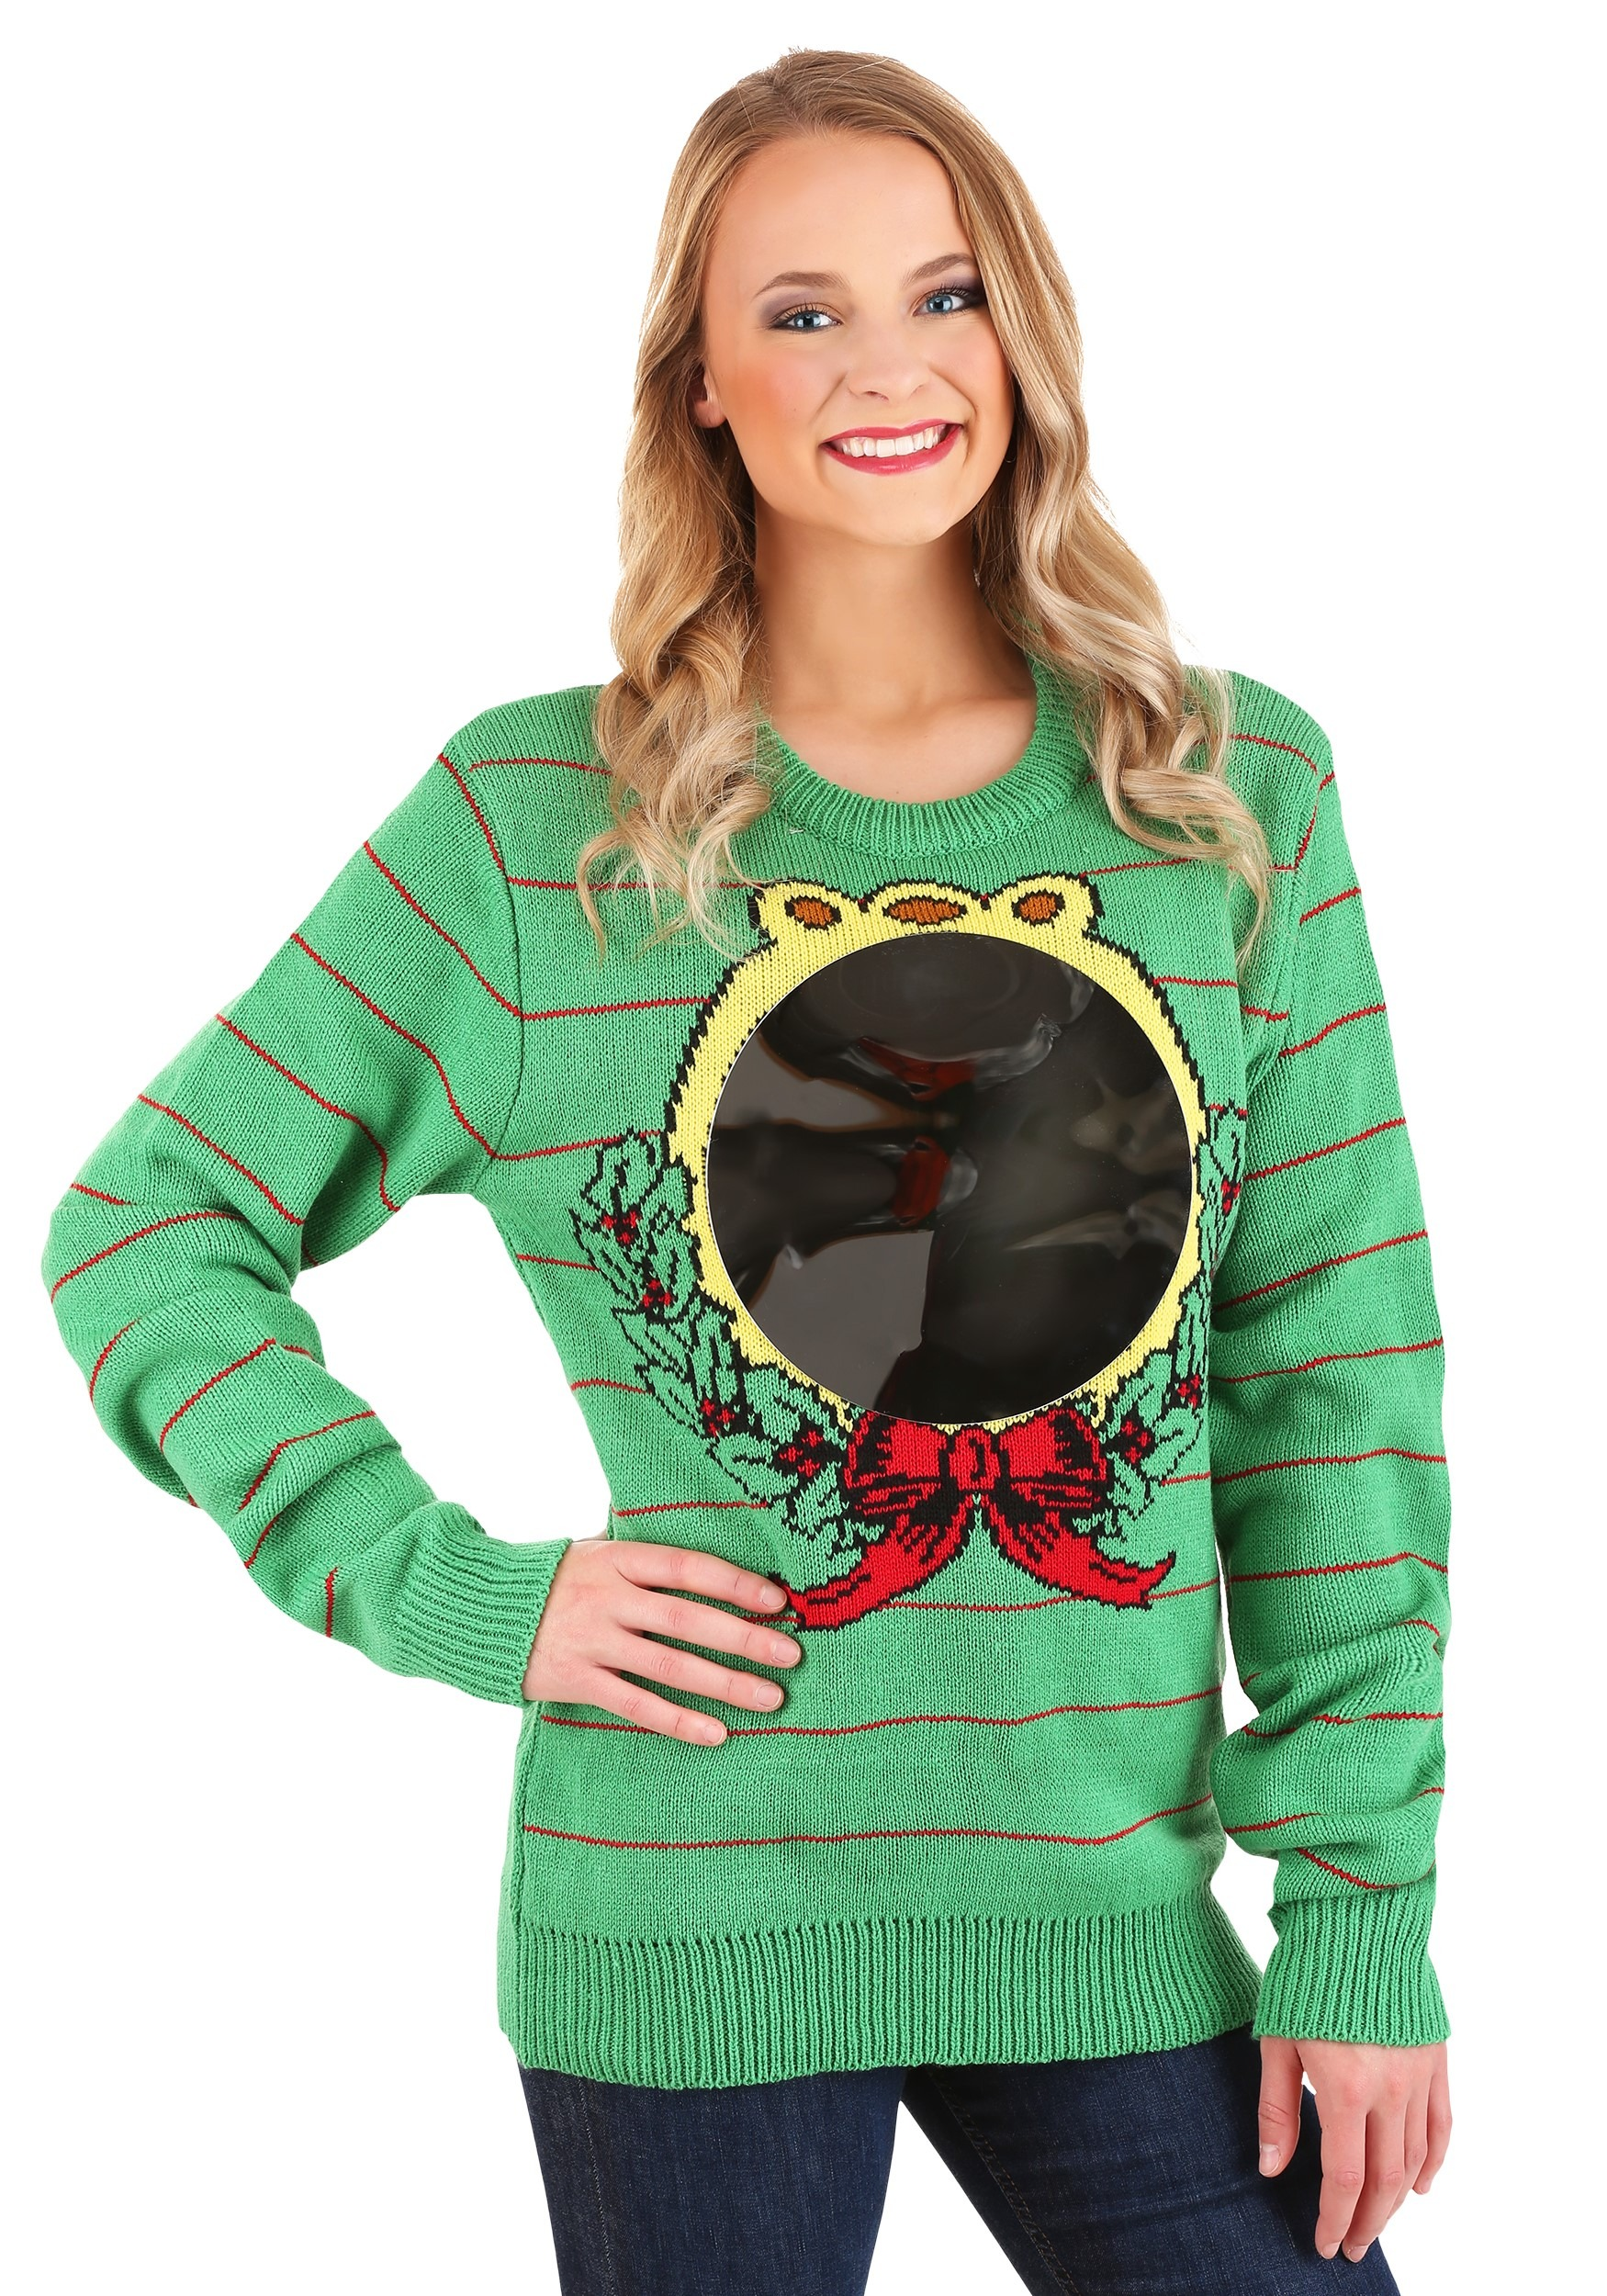 Mirror_Ugly_Christmas_Sweater_for_Adults